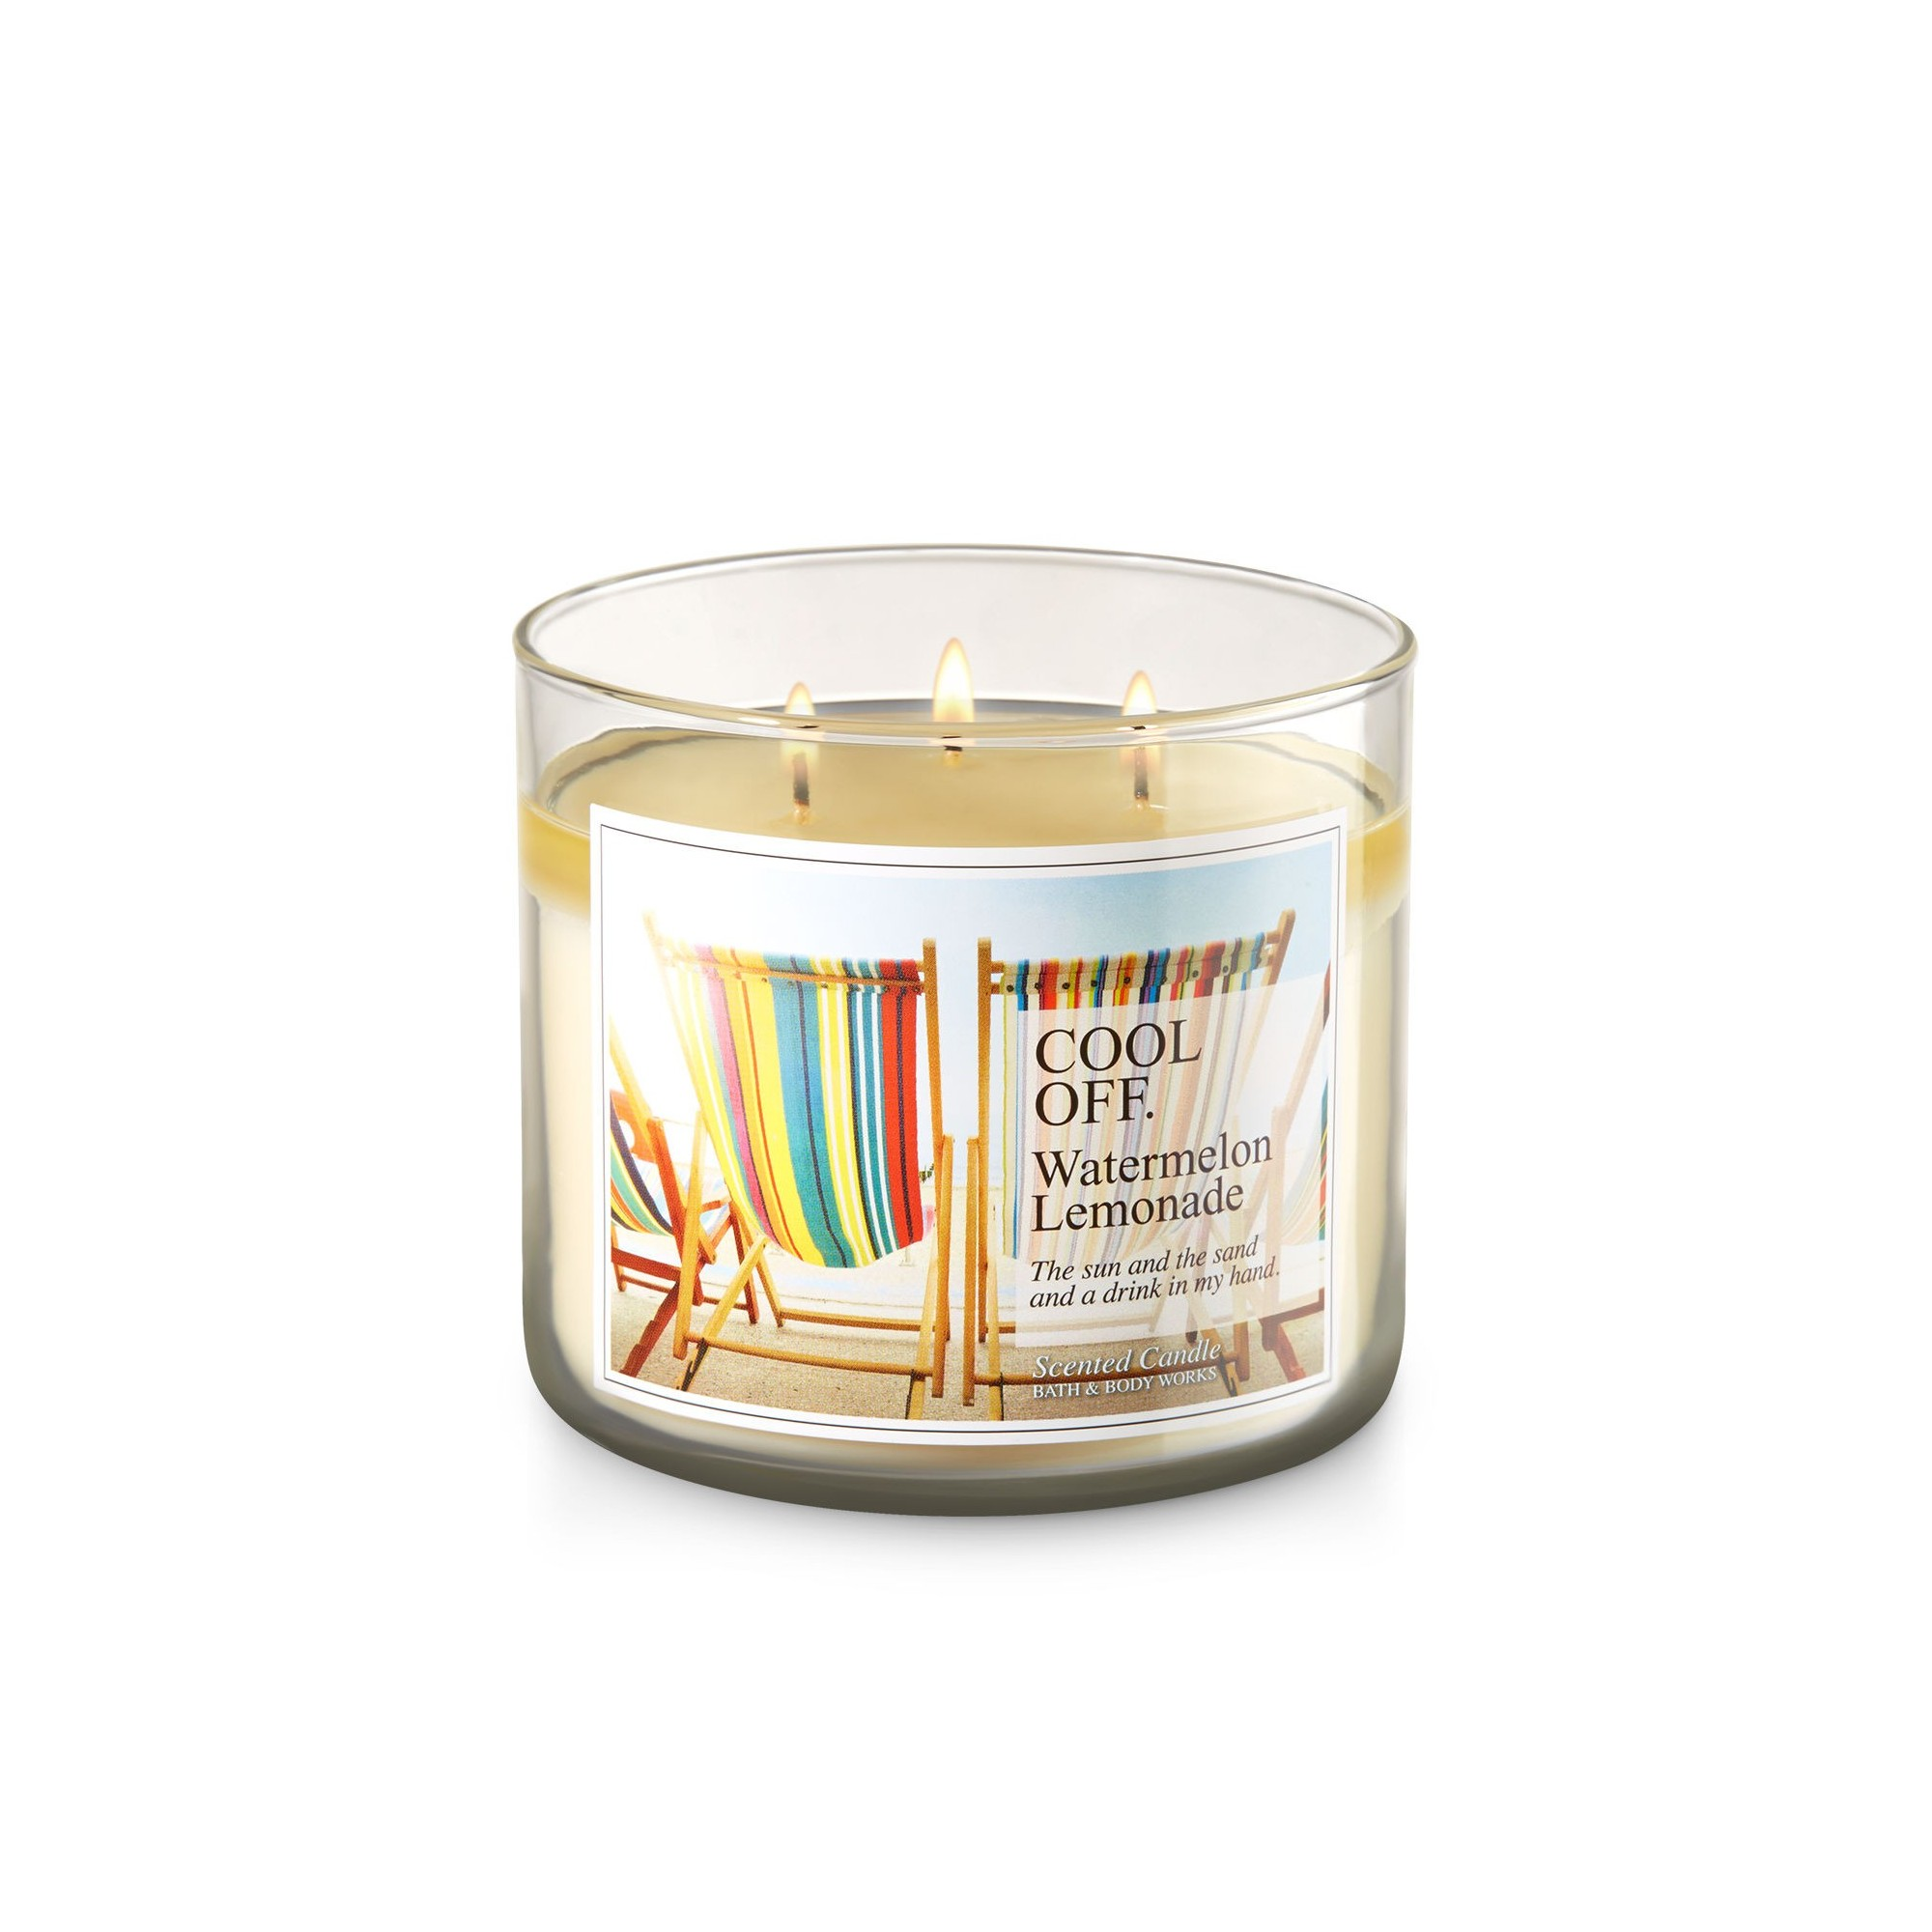 Bath & Body Works Watermelon Lemonade 3 Wick Scented Candle